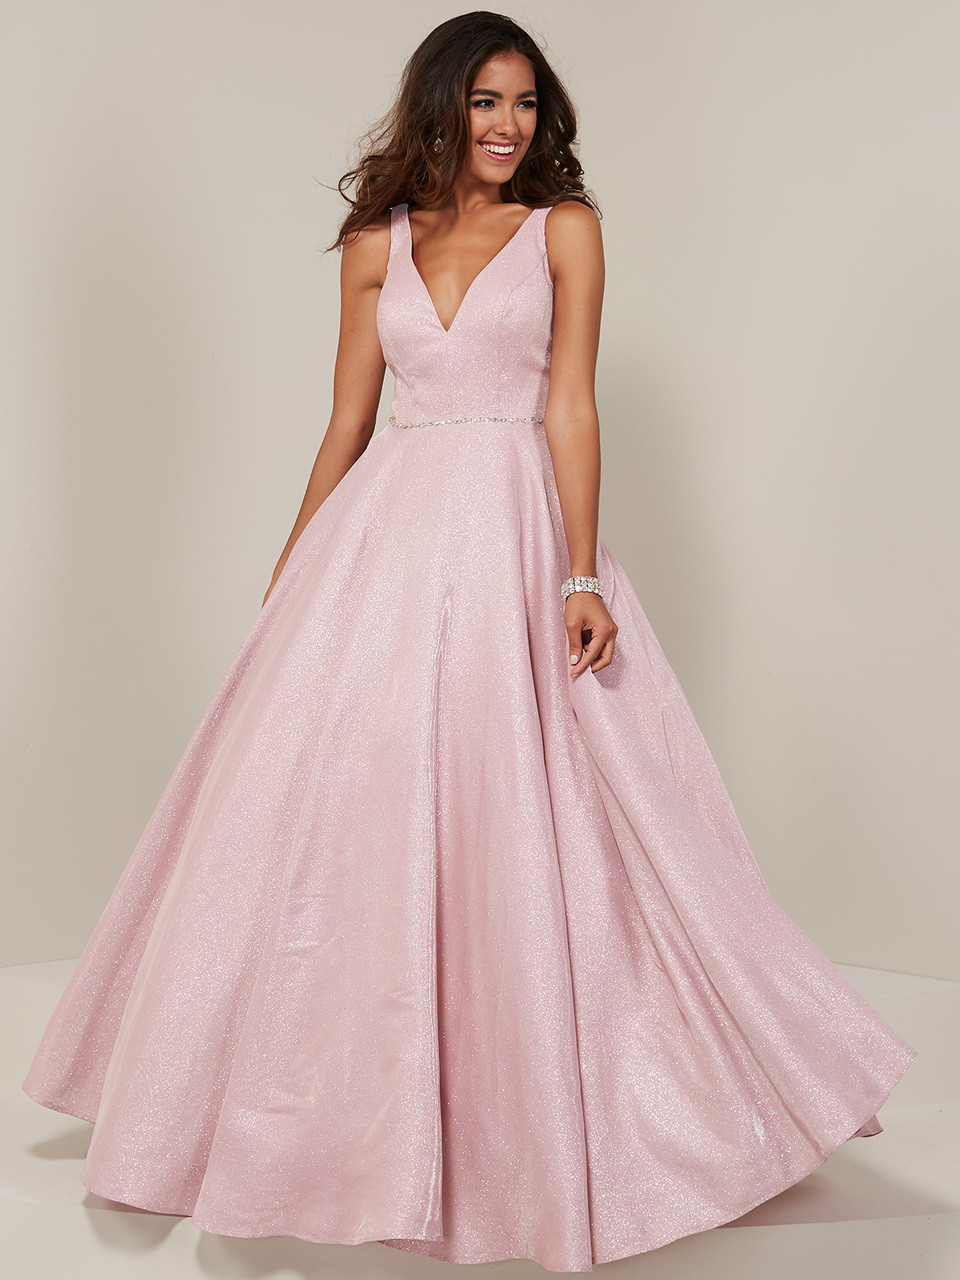 fbd030972d6 V-neck A-line Tiffany Designs 16334 Prom Dress - PromHeadquarters.com